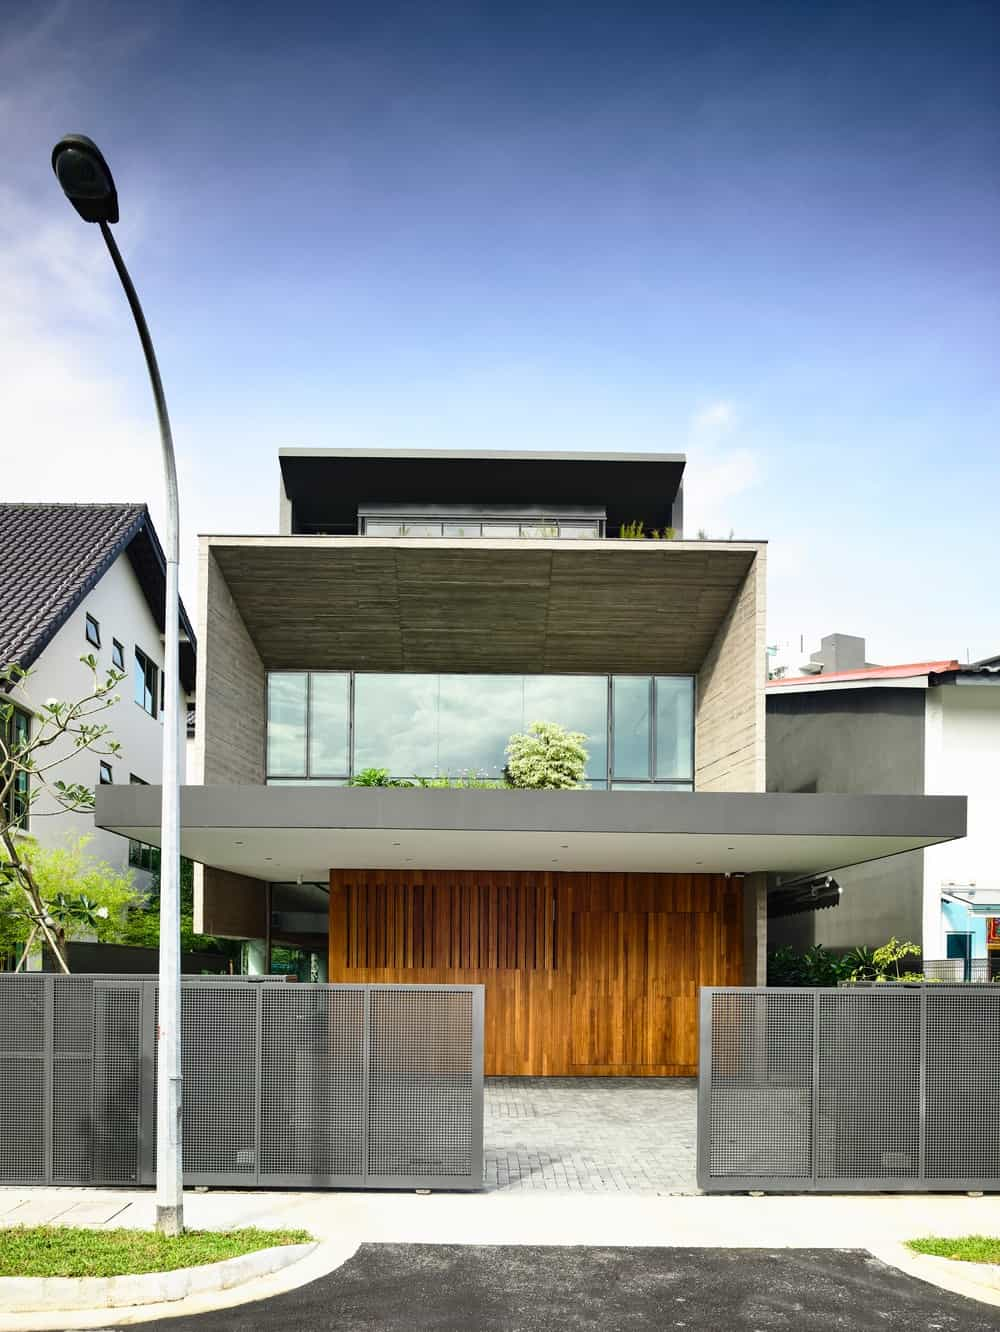 The driveway leads to the wood-toned garage doors of the house topped iwth a large glass wall on the second level.